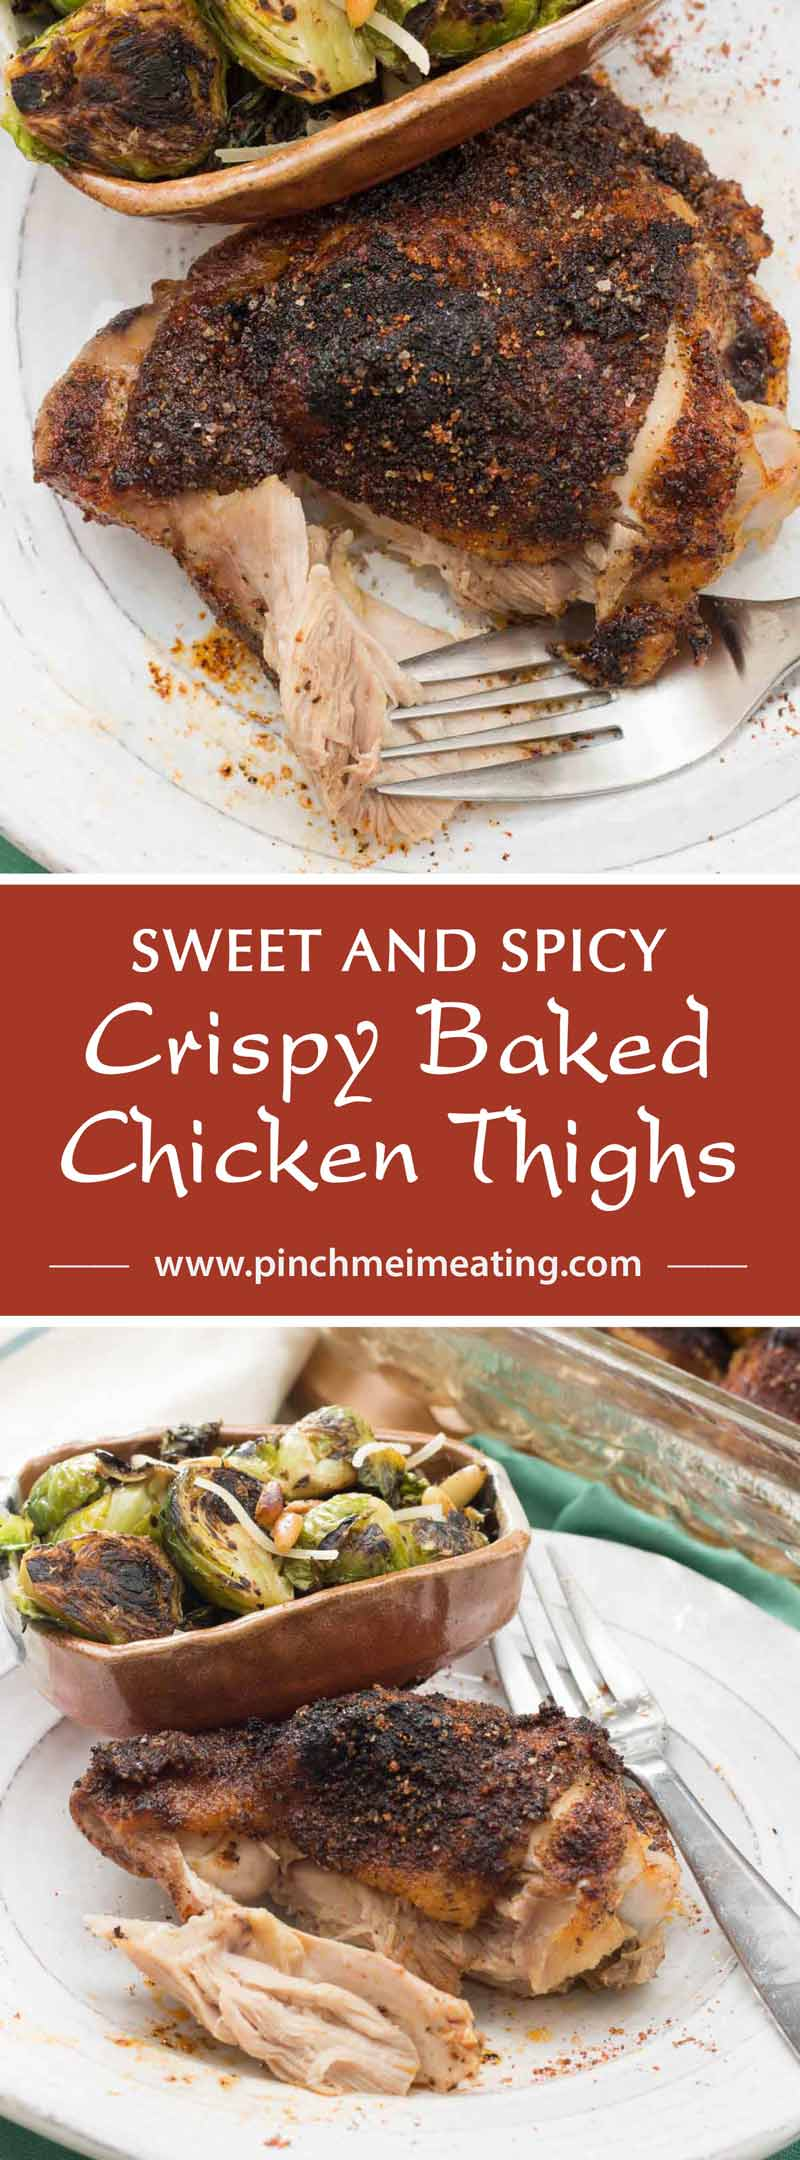 Covered in a delicious and simple sweet and spicy rub, these crispy baked chicken thighs are a satisfying, healthy, and easy main dish perfect for a weeknight dinner.